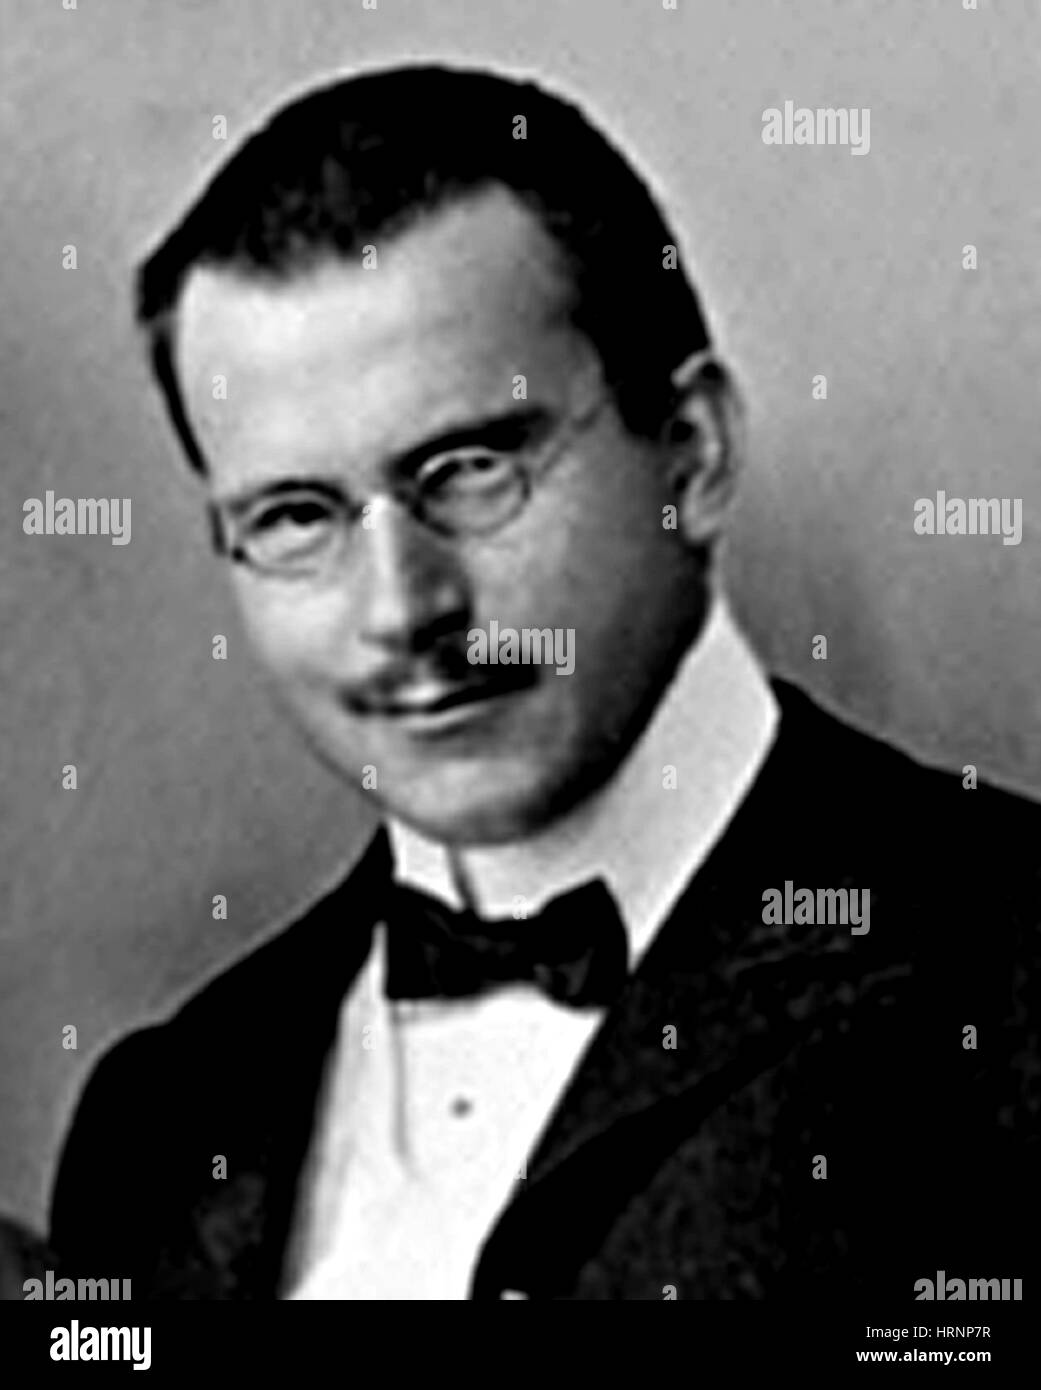 Carl Jung, Swiss Psychiatrist, Founder of Analytical Psychology - Stock Image